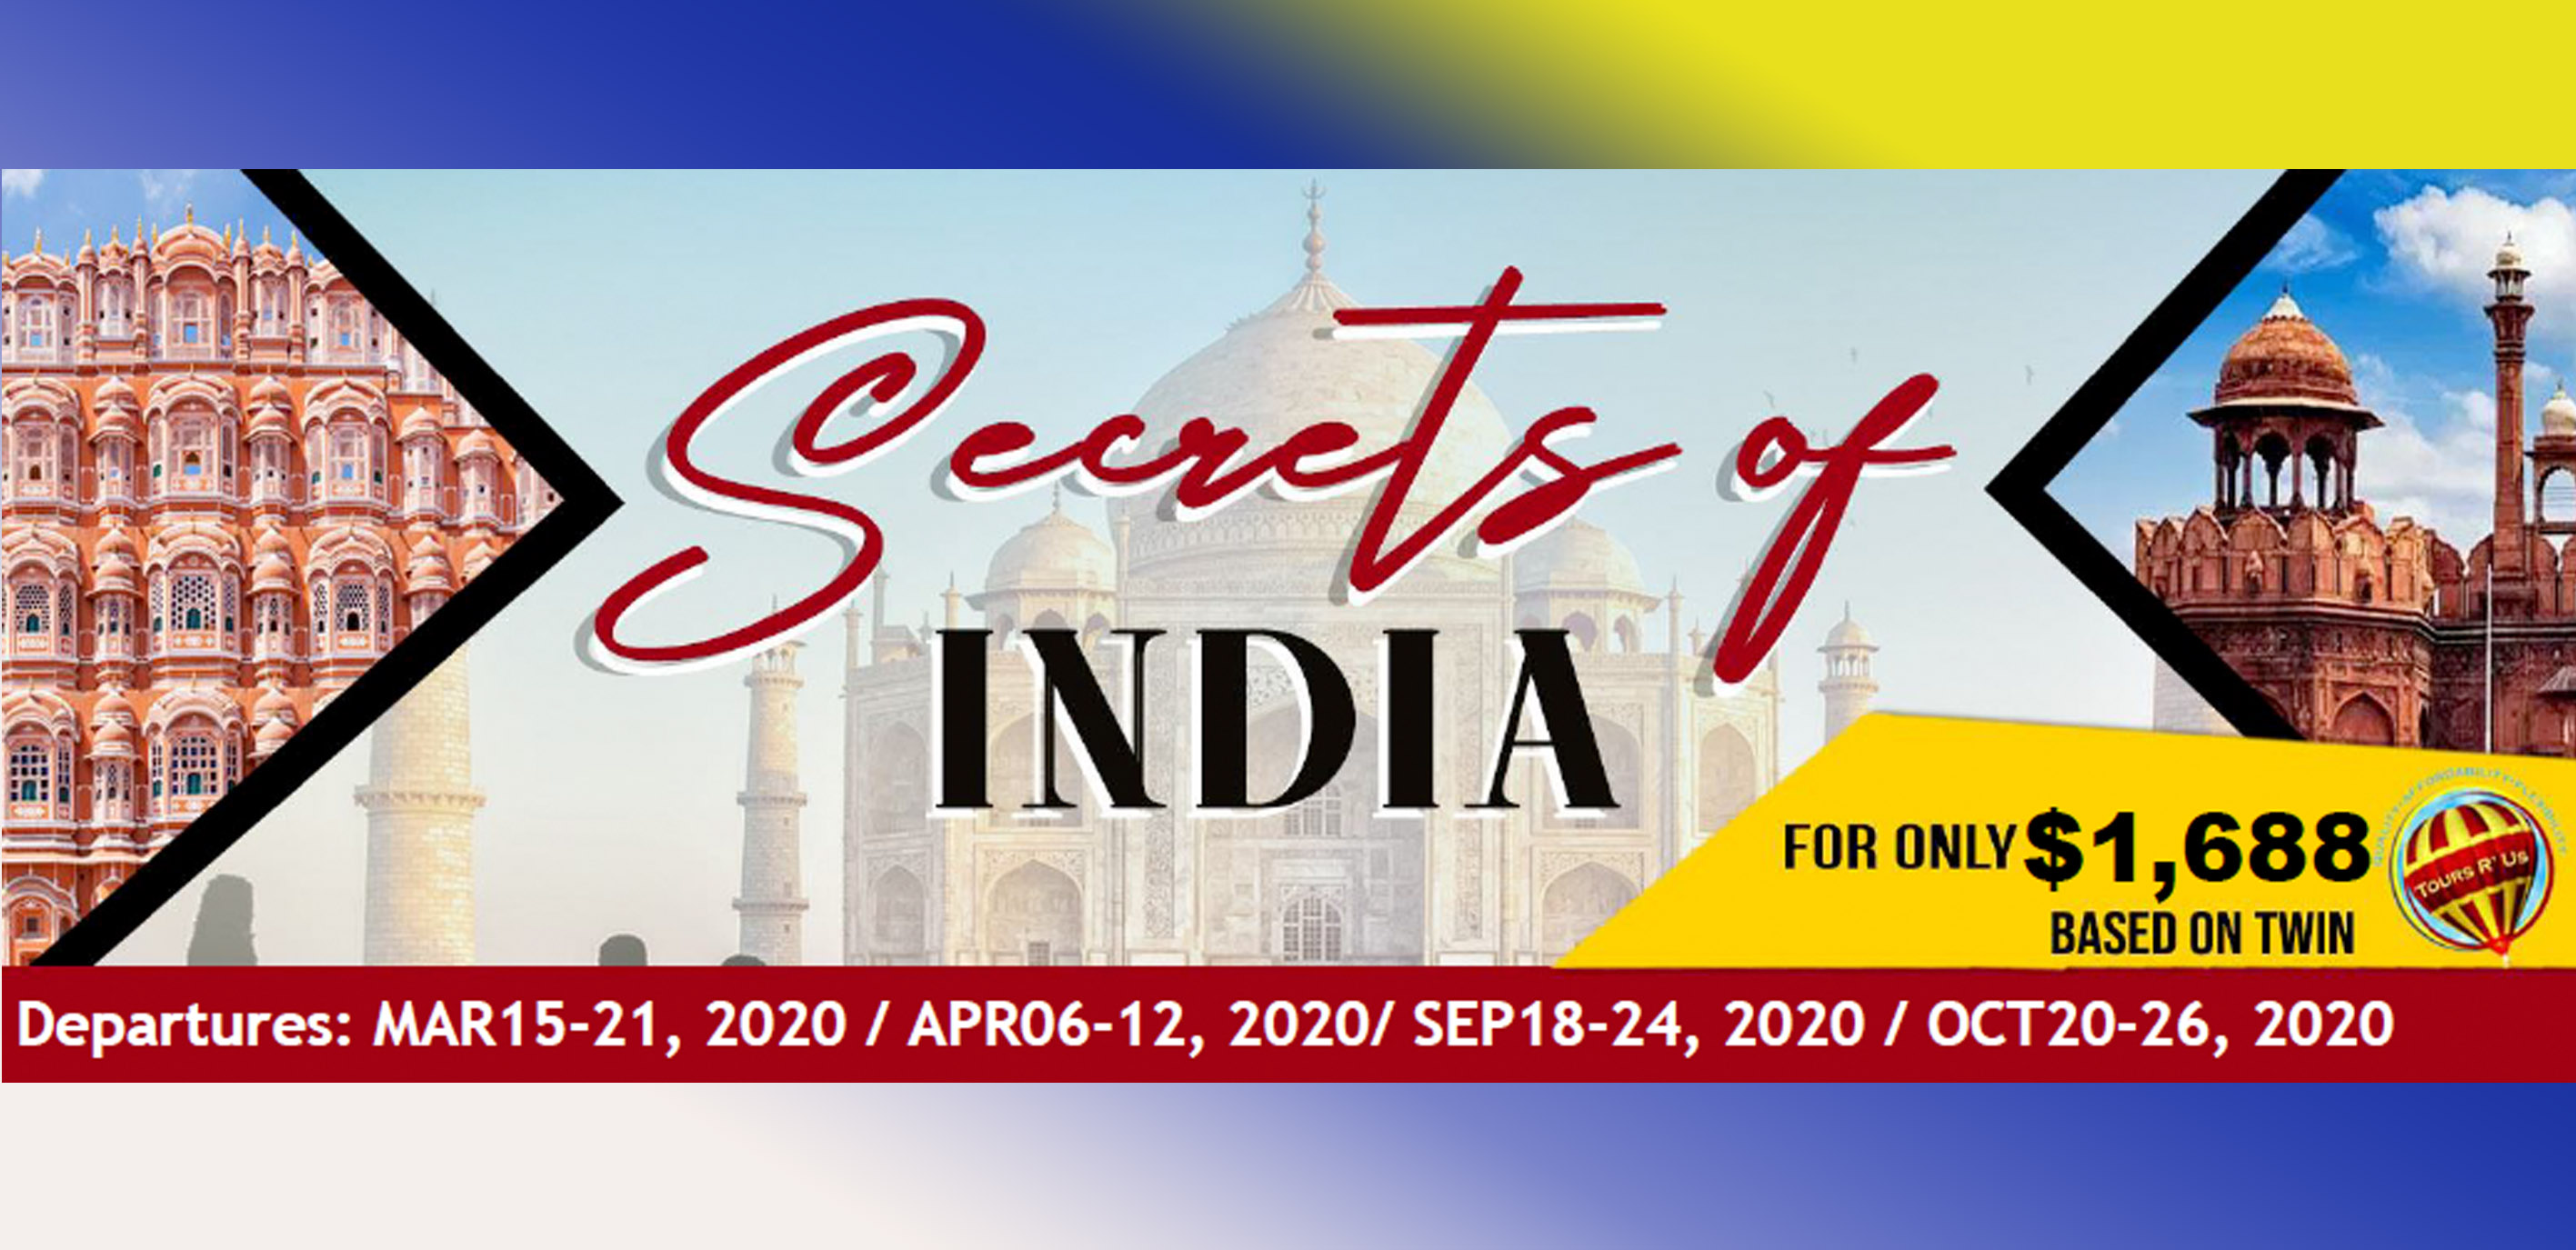 SECRETS OF INDIA ITINERARY - Featured Images 2020 February Packages